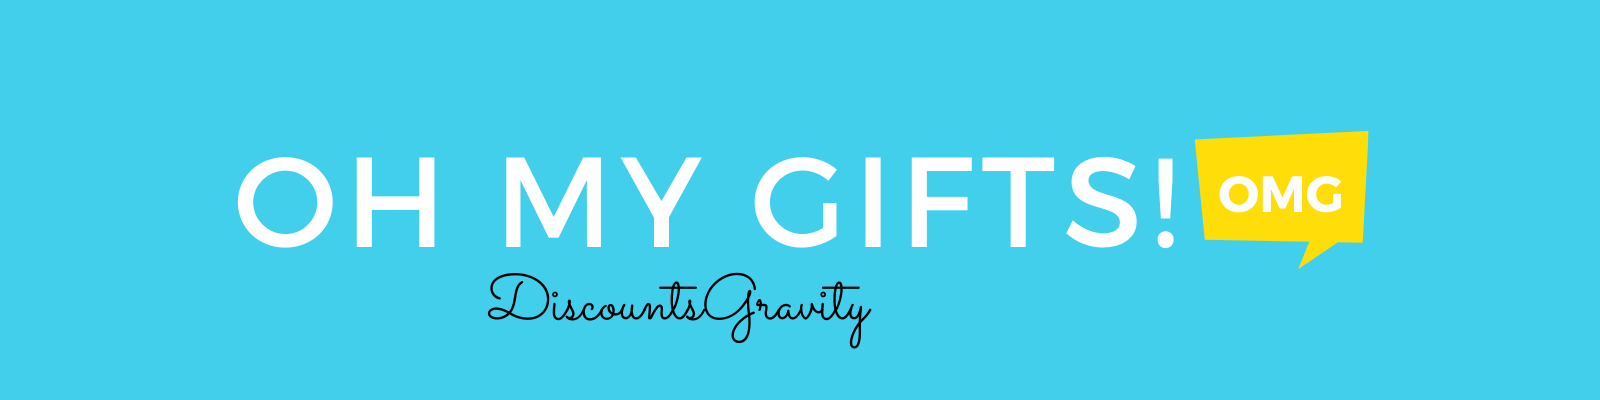 Gifts Coupons at Discounts Gravity